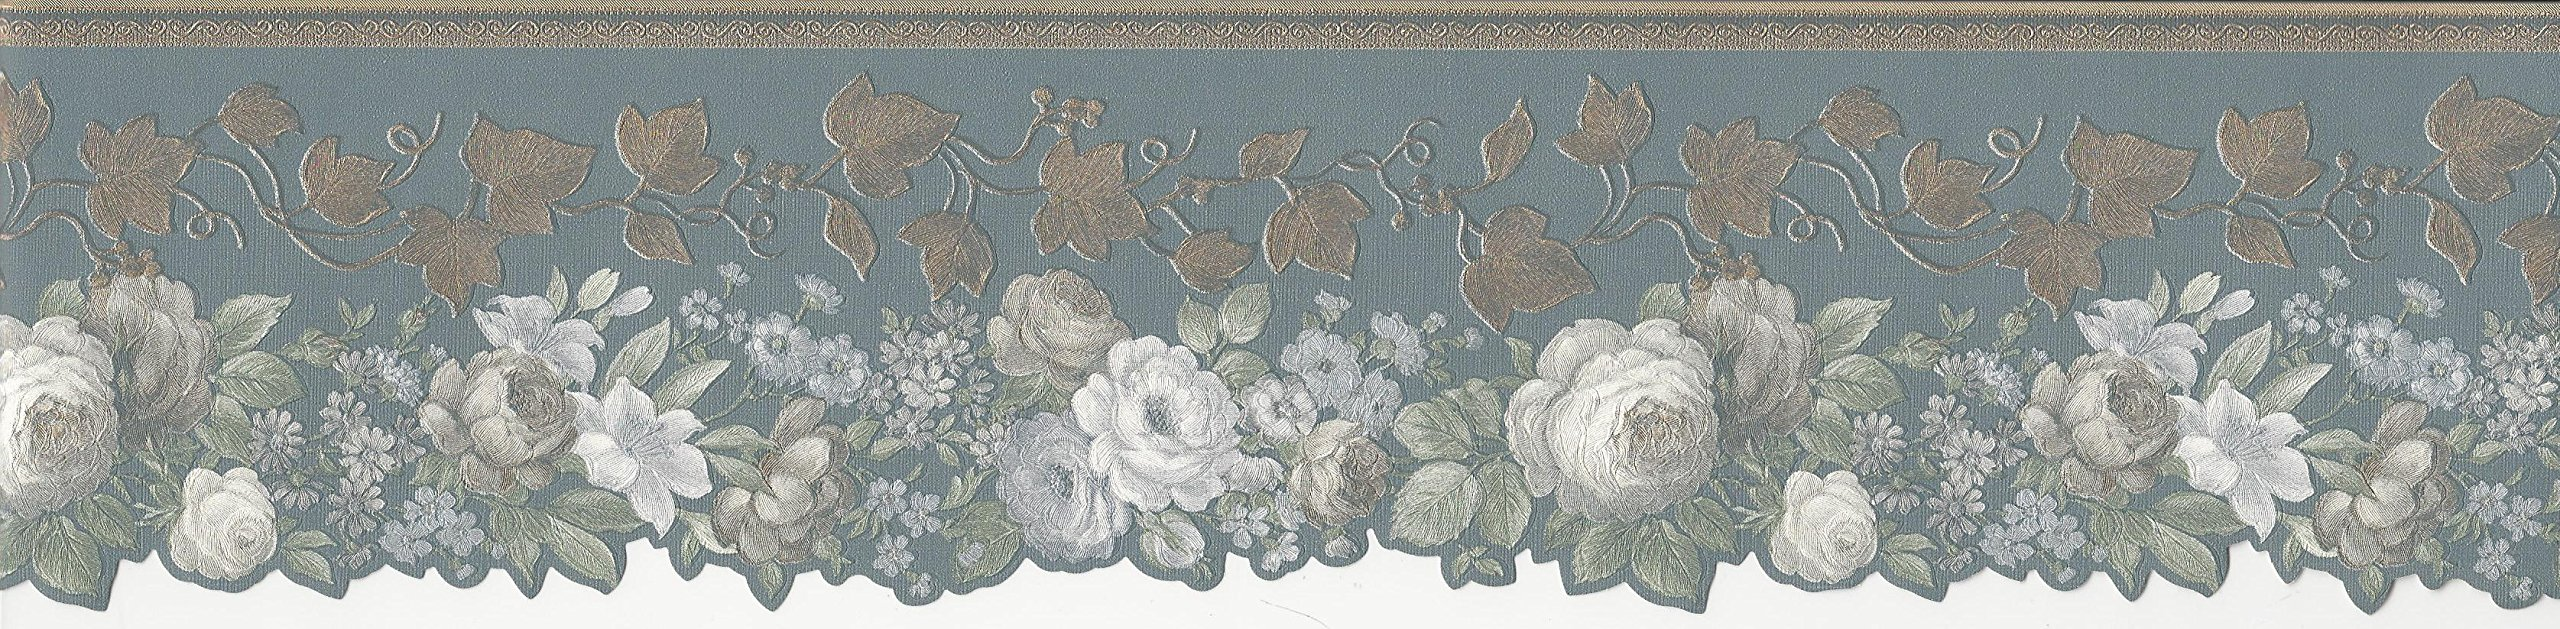 Wallpaper Border Gray White Blue Floral with Bronze Ivy on Gray Blue Die Cut